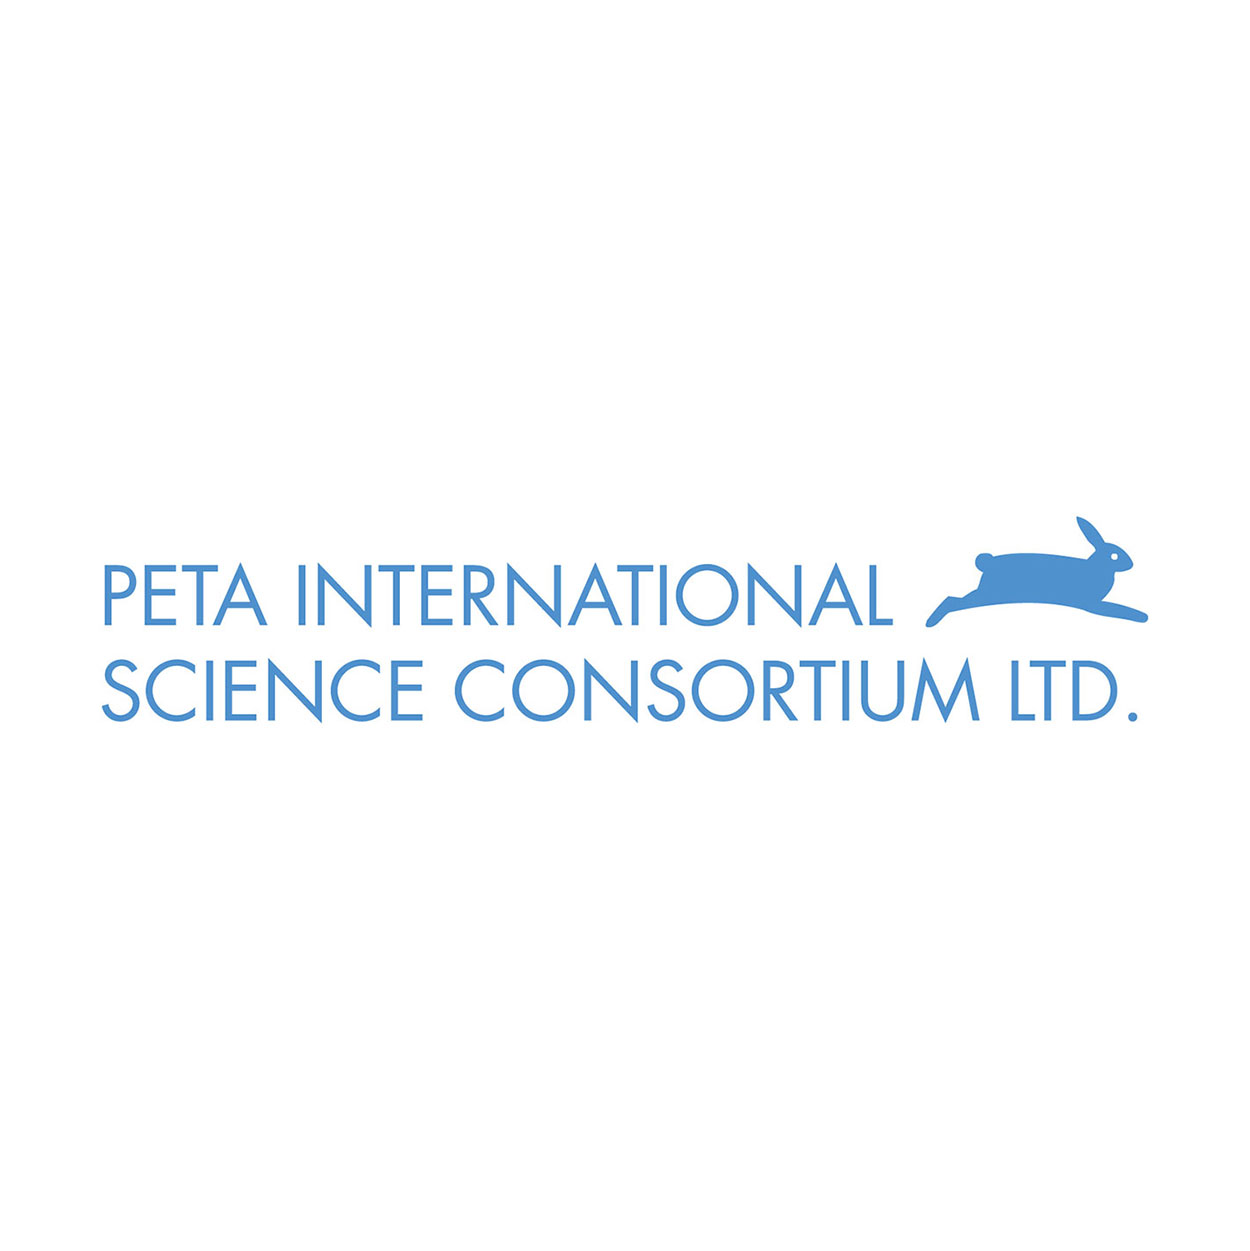 Peta International Science Consortium